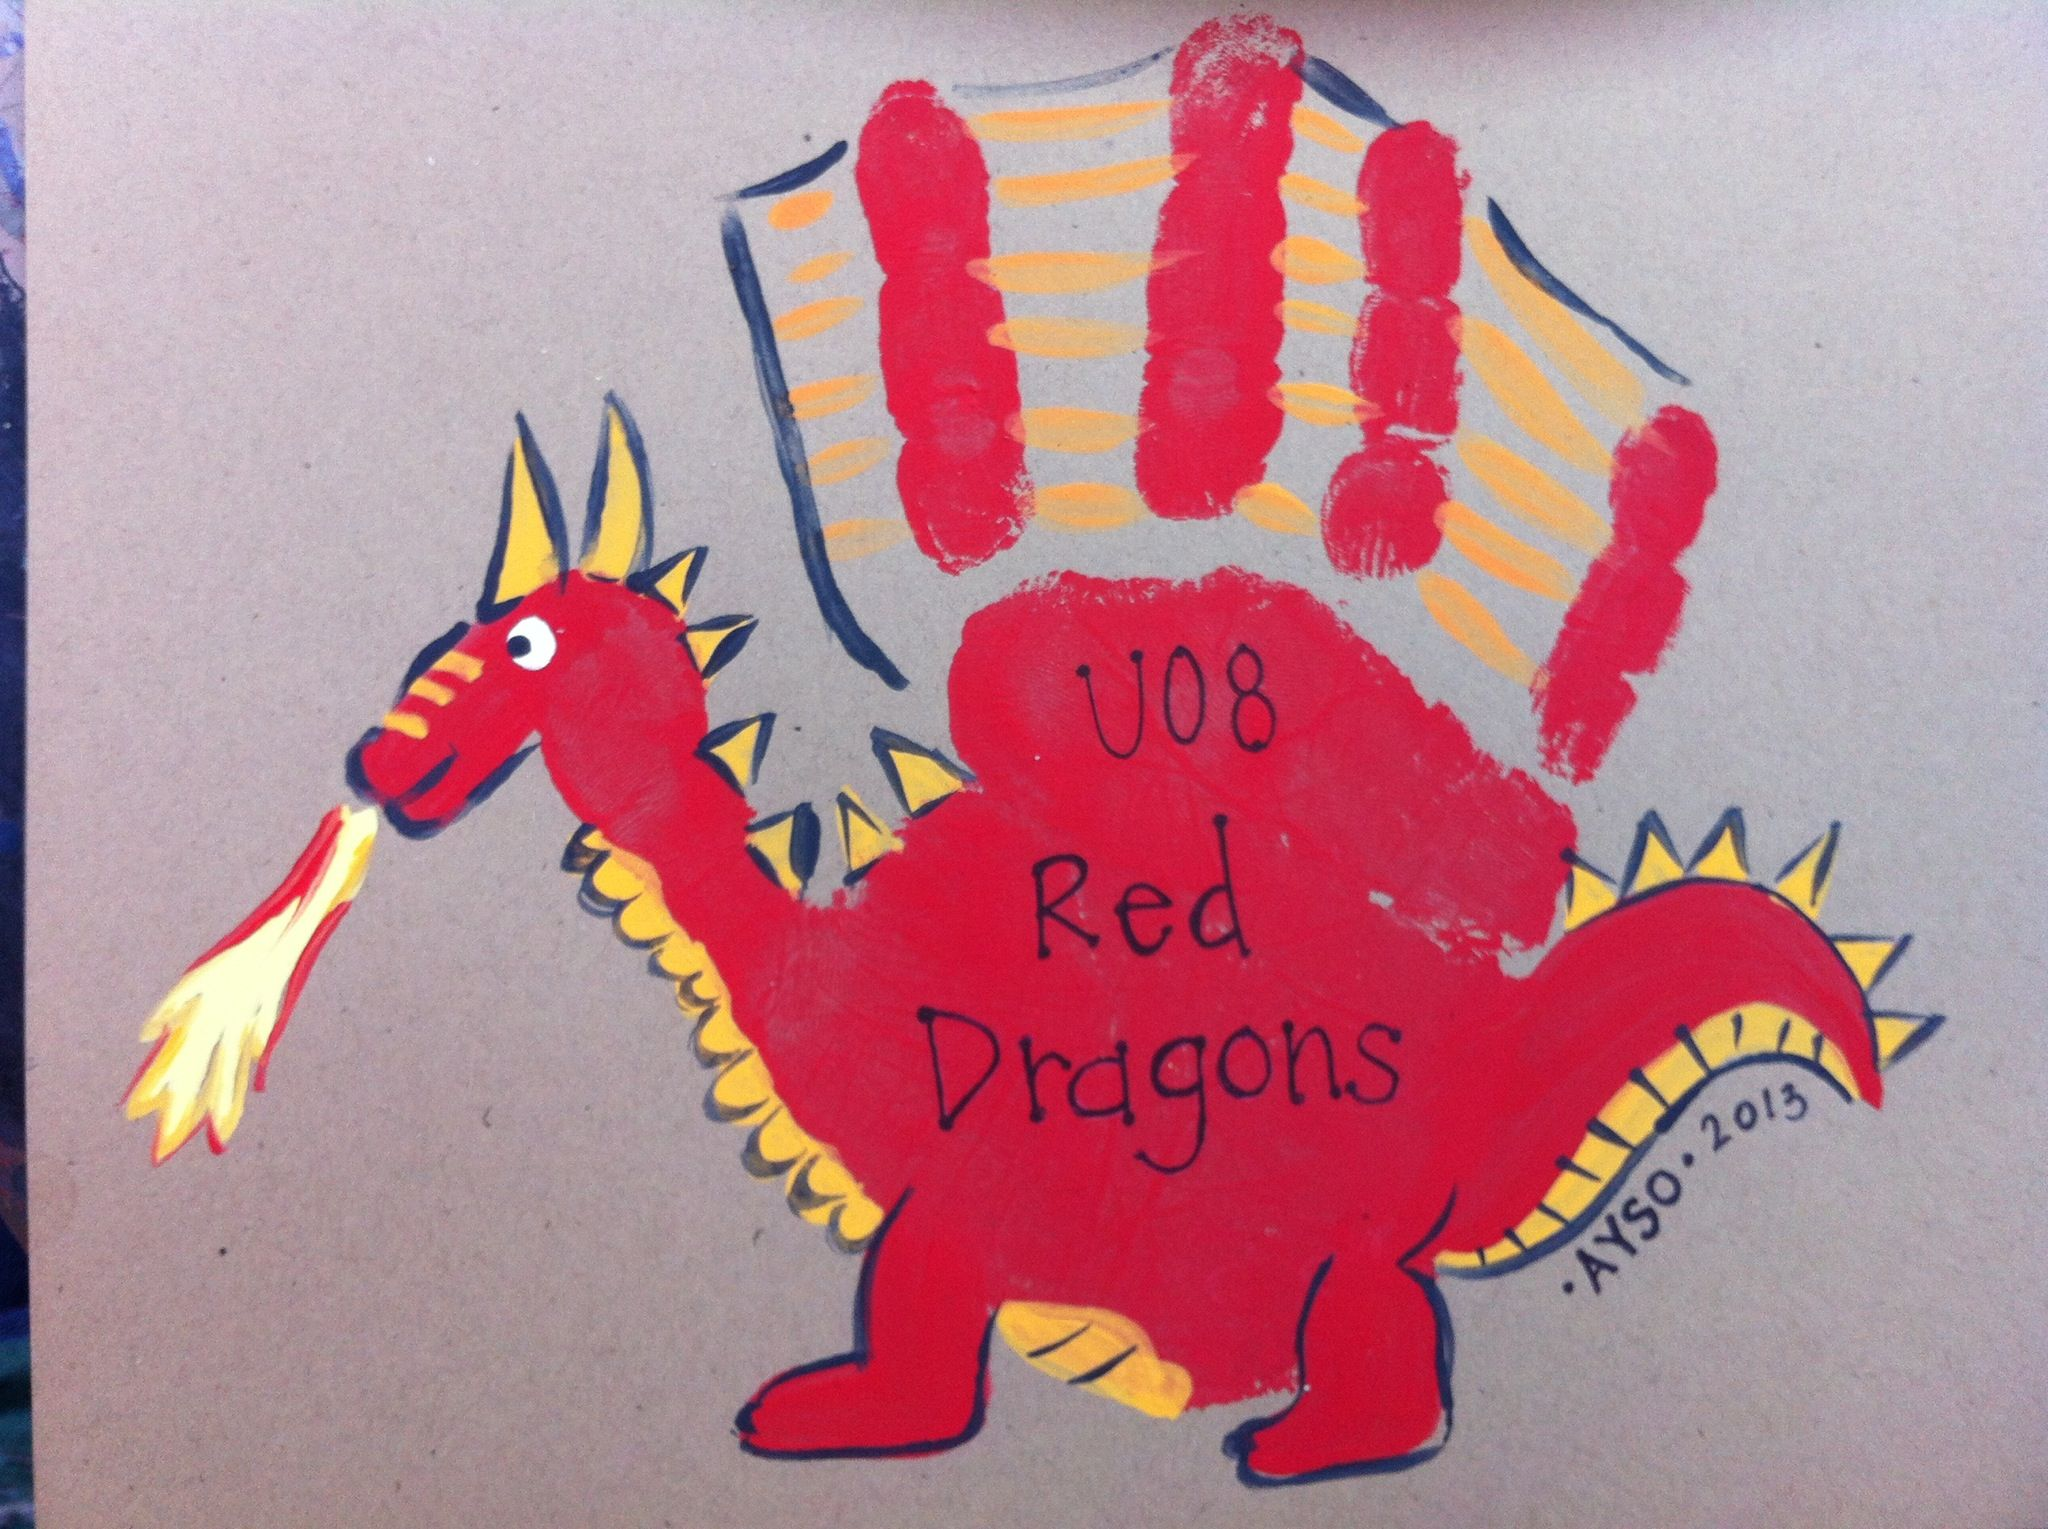 Handprint dragon craft ideas pinterest dragons for Dragon crafts pinterest